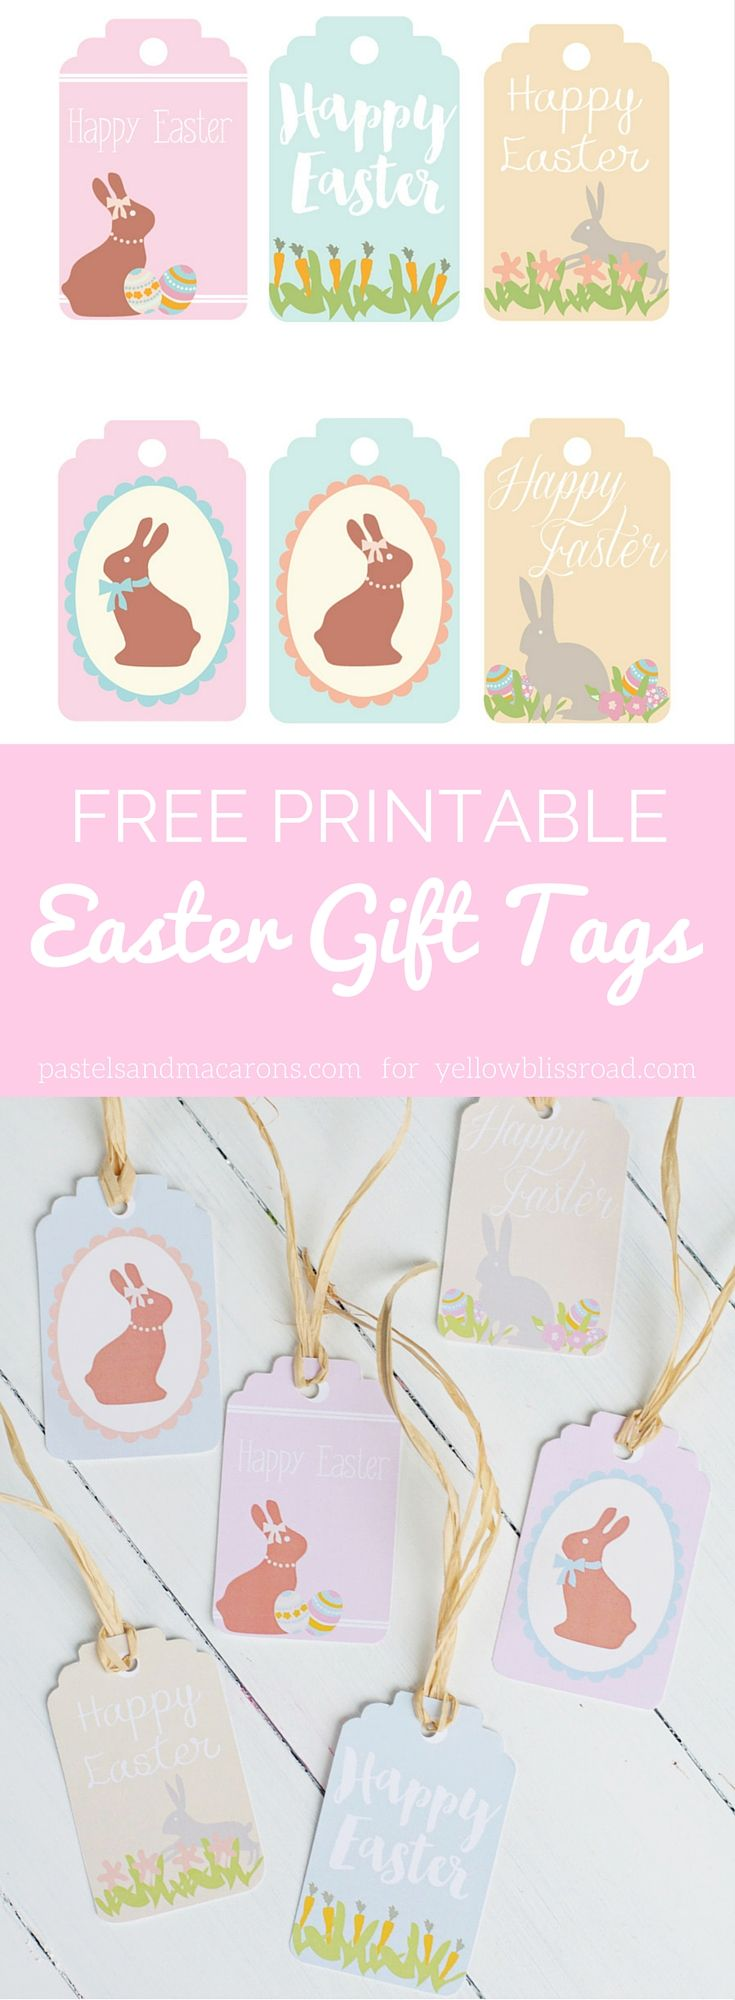 Peeps easter gift idea with free printables free printable gift download these free printable easter gift tags for all your gifts this easter you get negle Choice Image